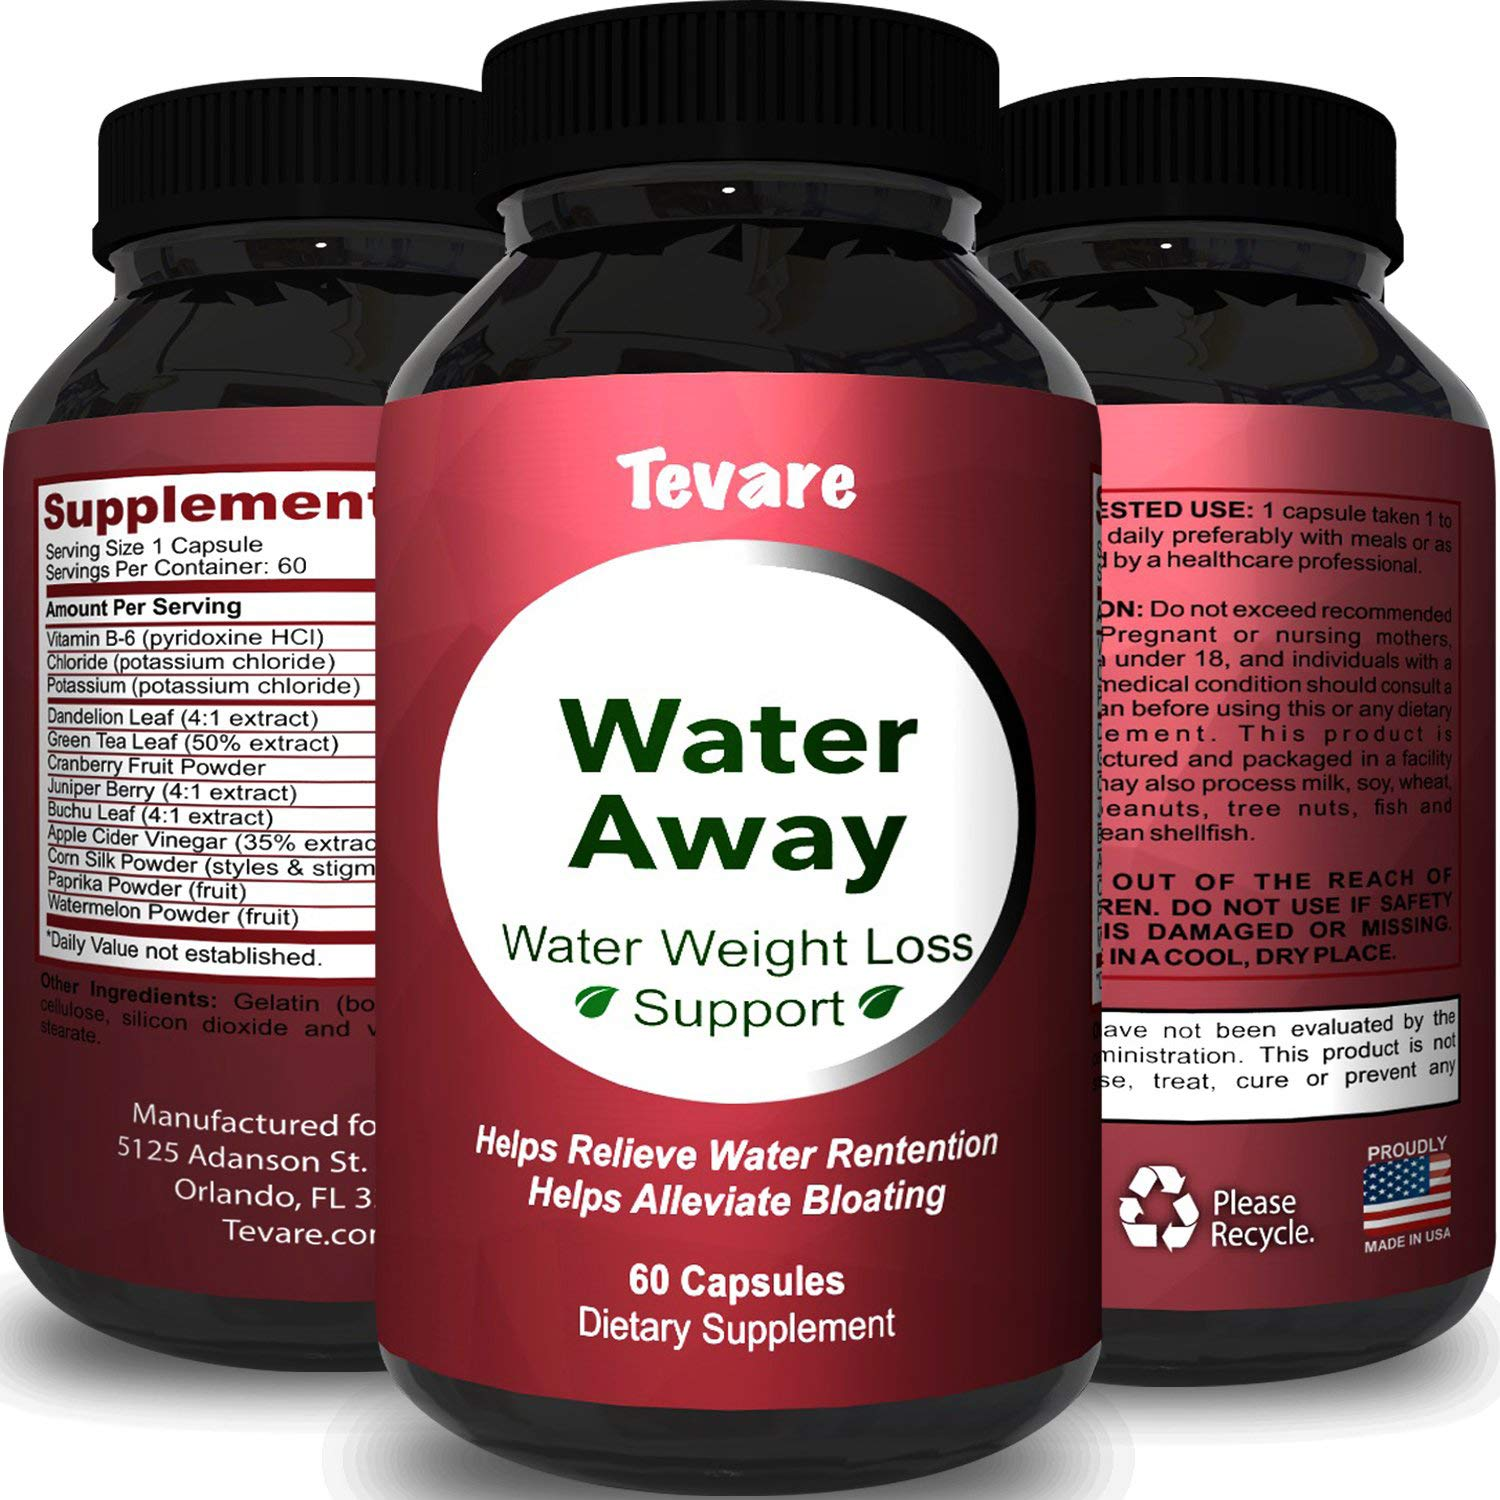 Premium Water Pills Diuretic Natural & Pure Dietary Supplement for Water Retention Relief Weight loss Detox Cleanse for Men & Women with Vitamin B-6 Potassium Chloride Dandelion Root by Tevare by Tevare